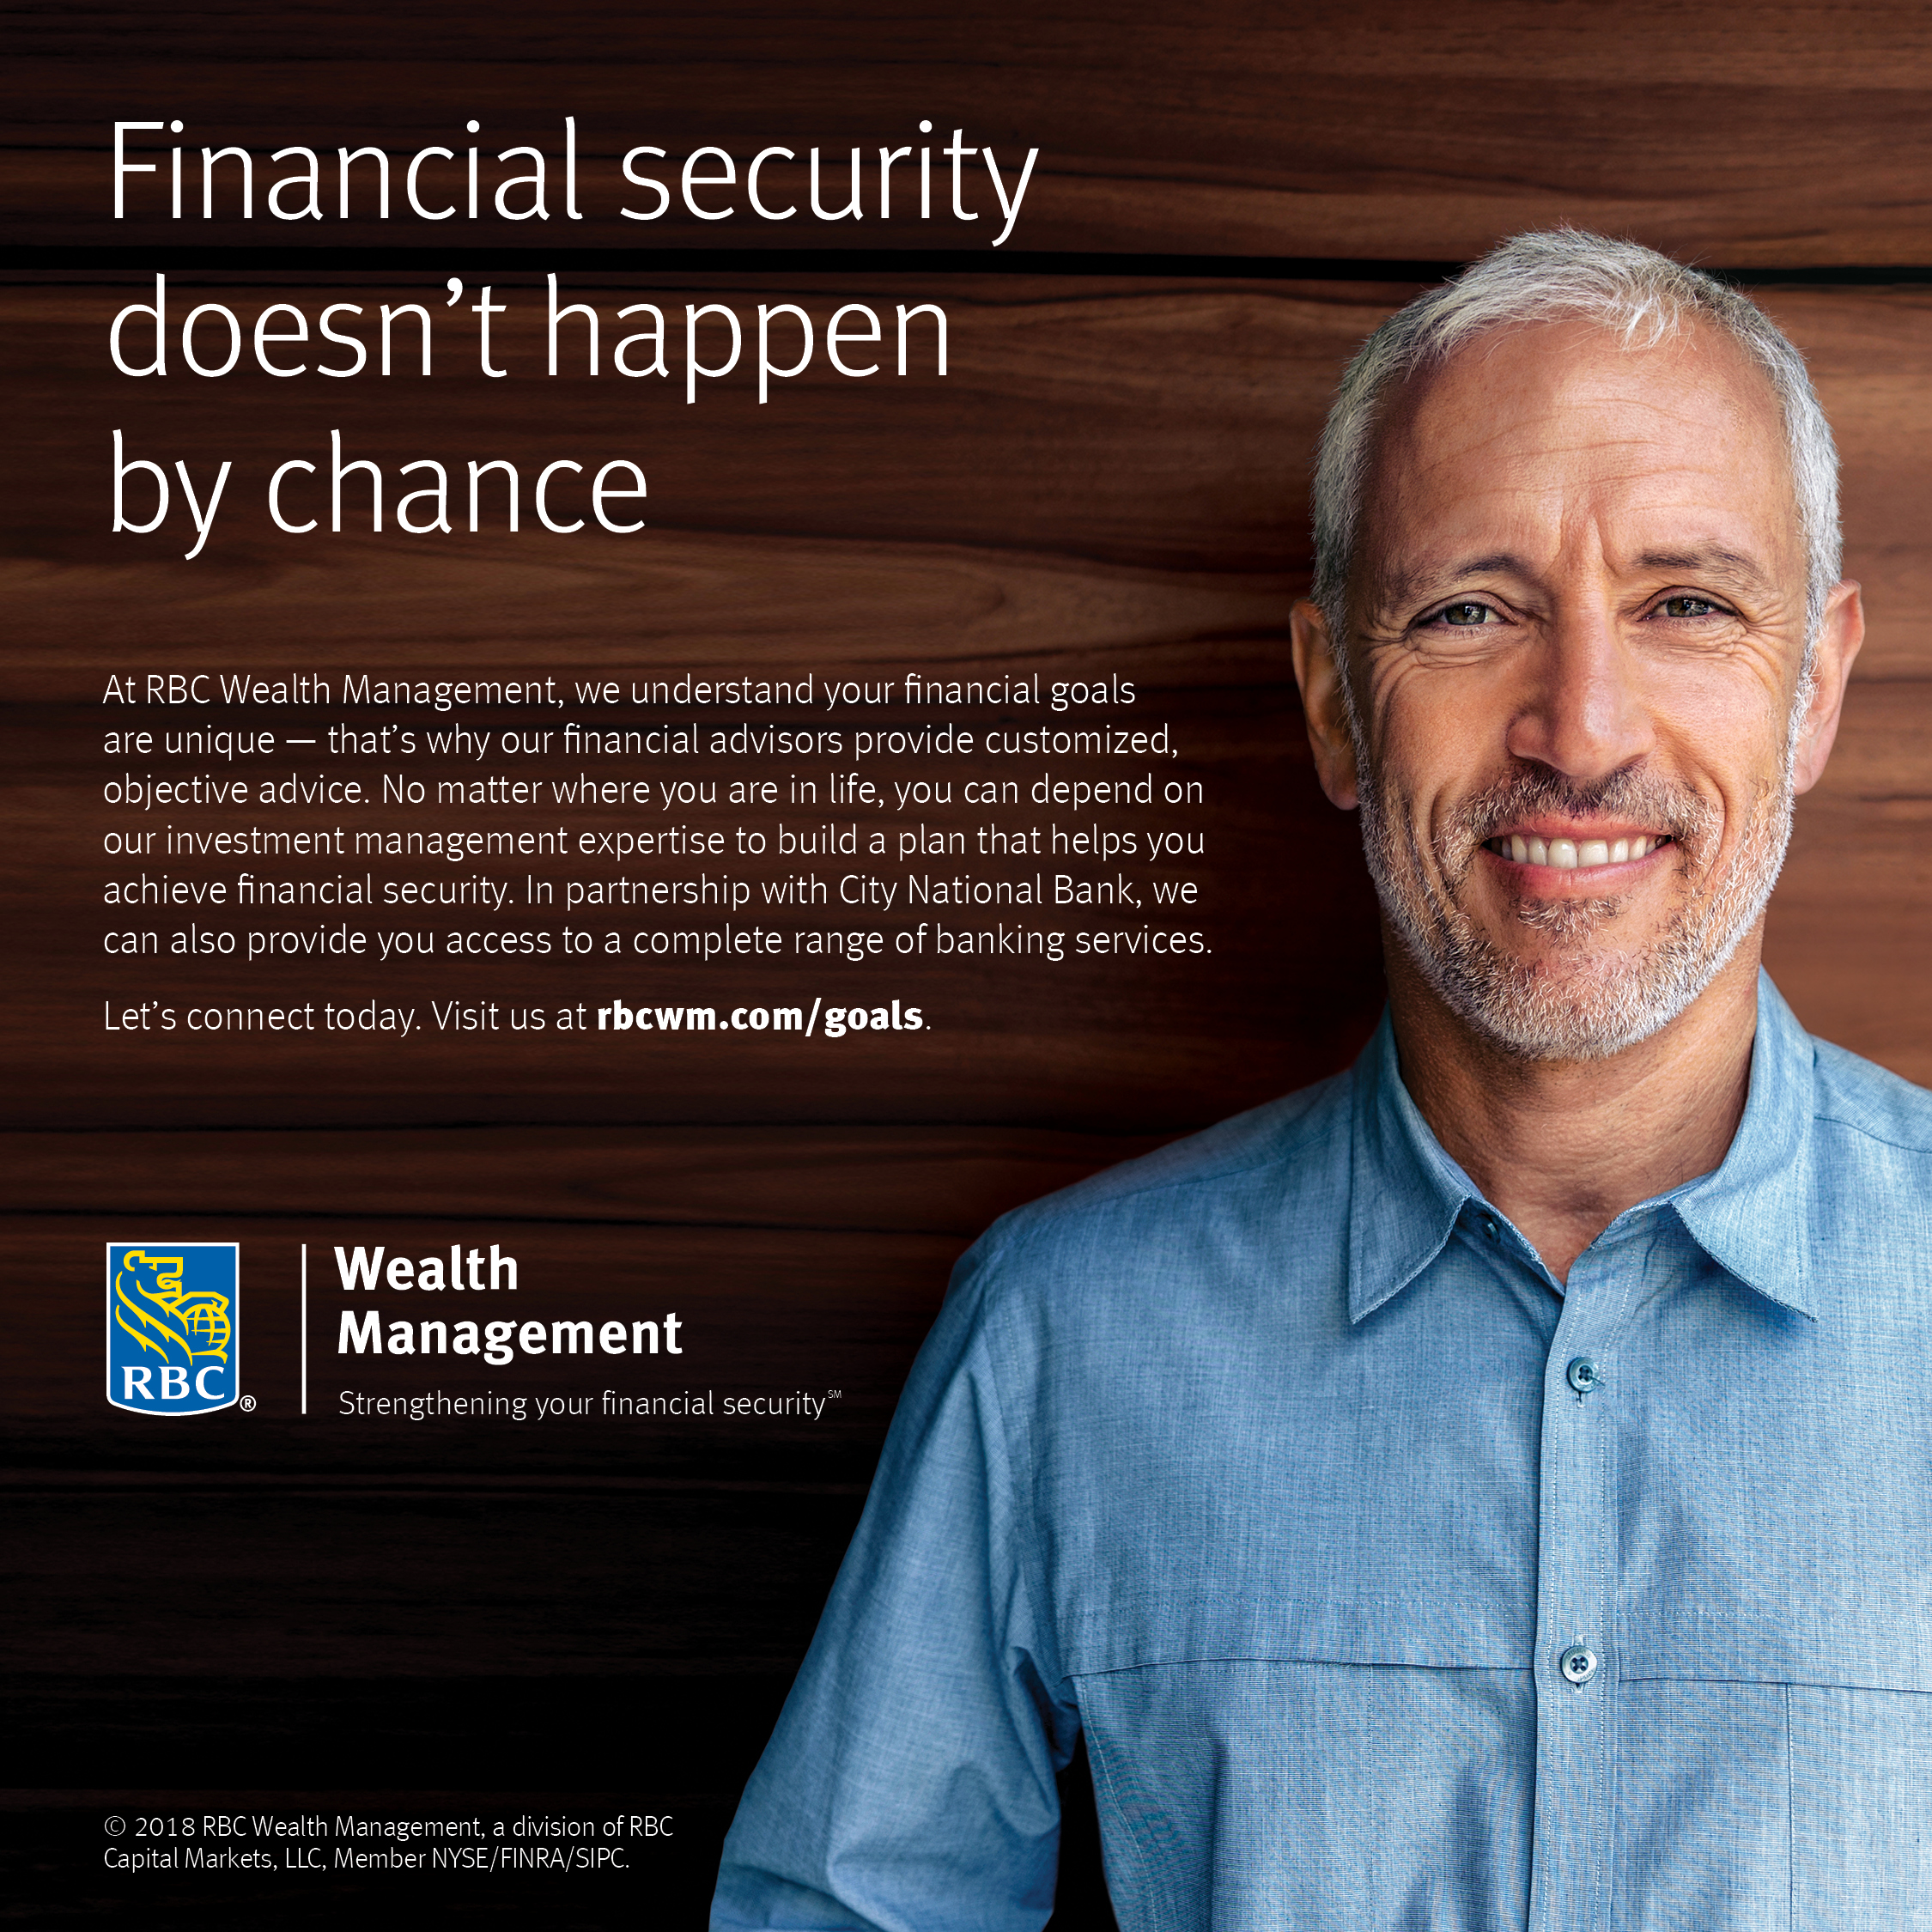 RBC Wealth Management-U.S.: Financial security doesn't happen by chance